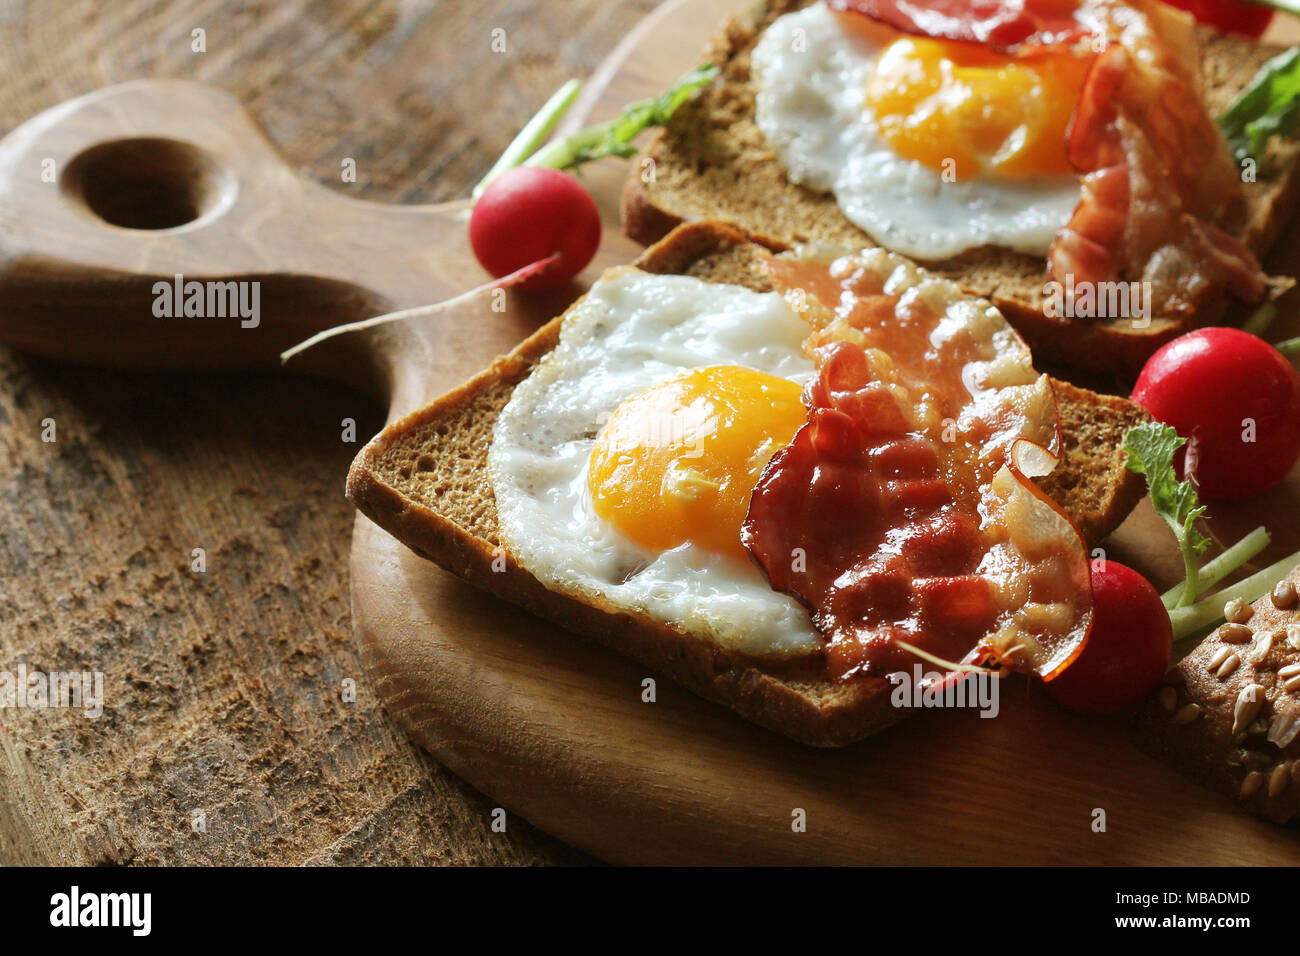 Breakfast of crispy bacon, fried eggs and bread. Sandwiches on cutting board. Rustic table Stock Photo